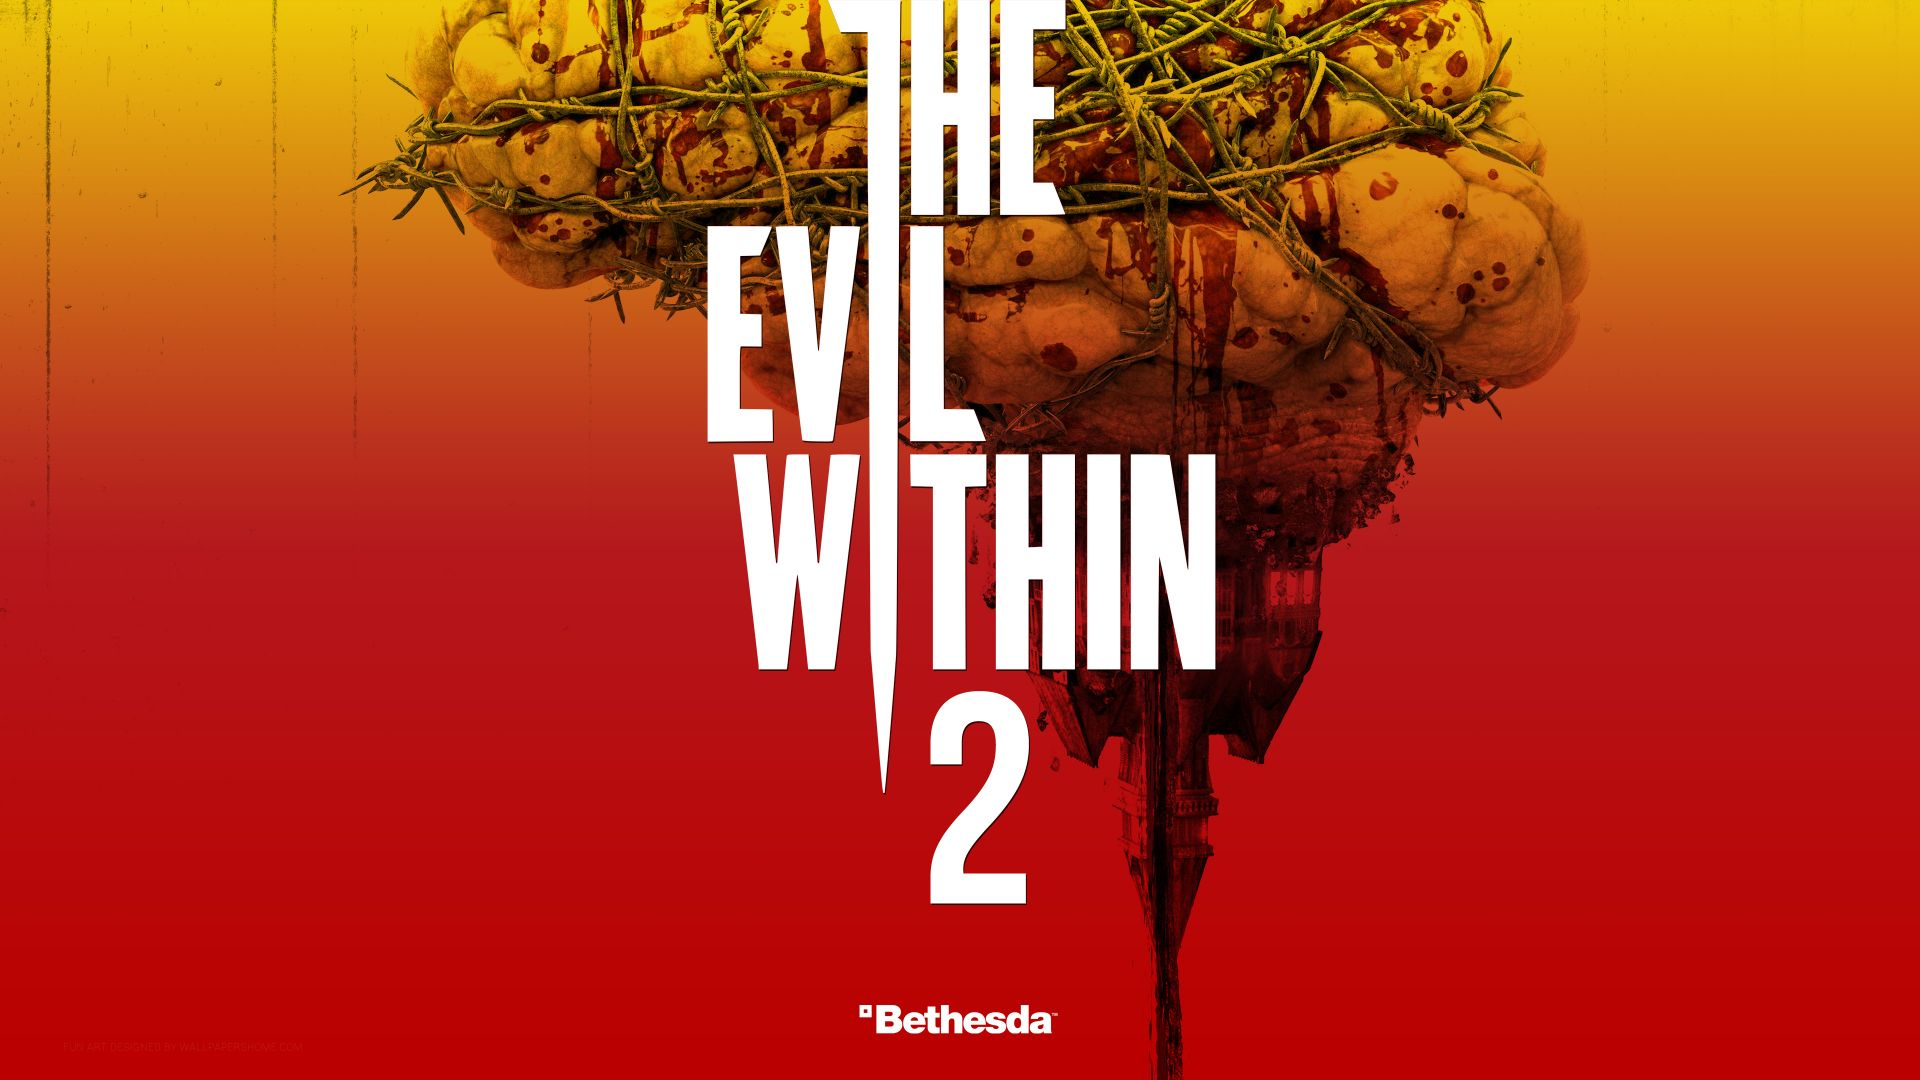 Wallpaper The Evil Within 2 2017 E3 2017 4k Games 7892: Wallpaper The Evil Within 2, 4k, E3 2017, Games #13729